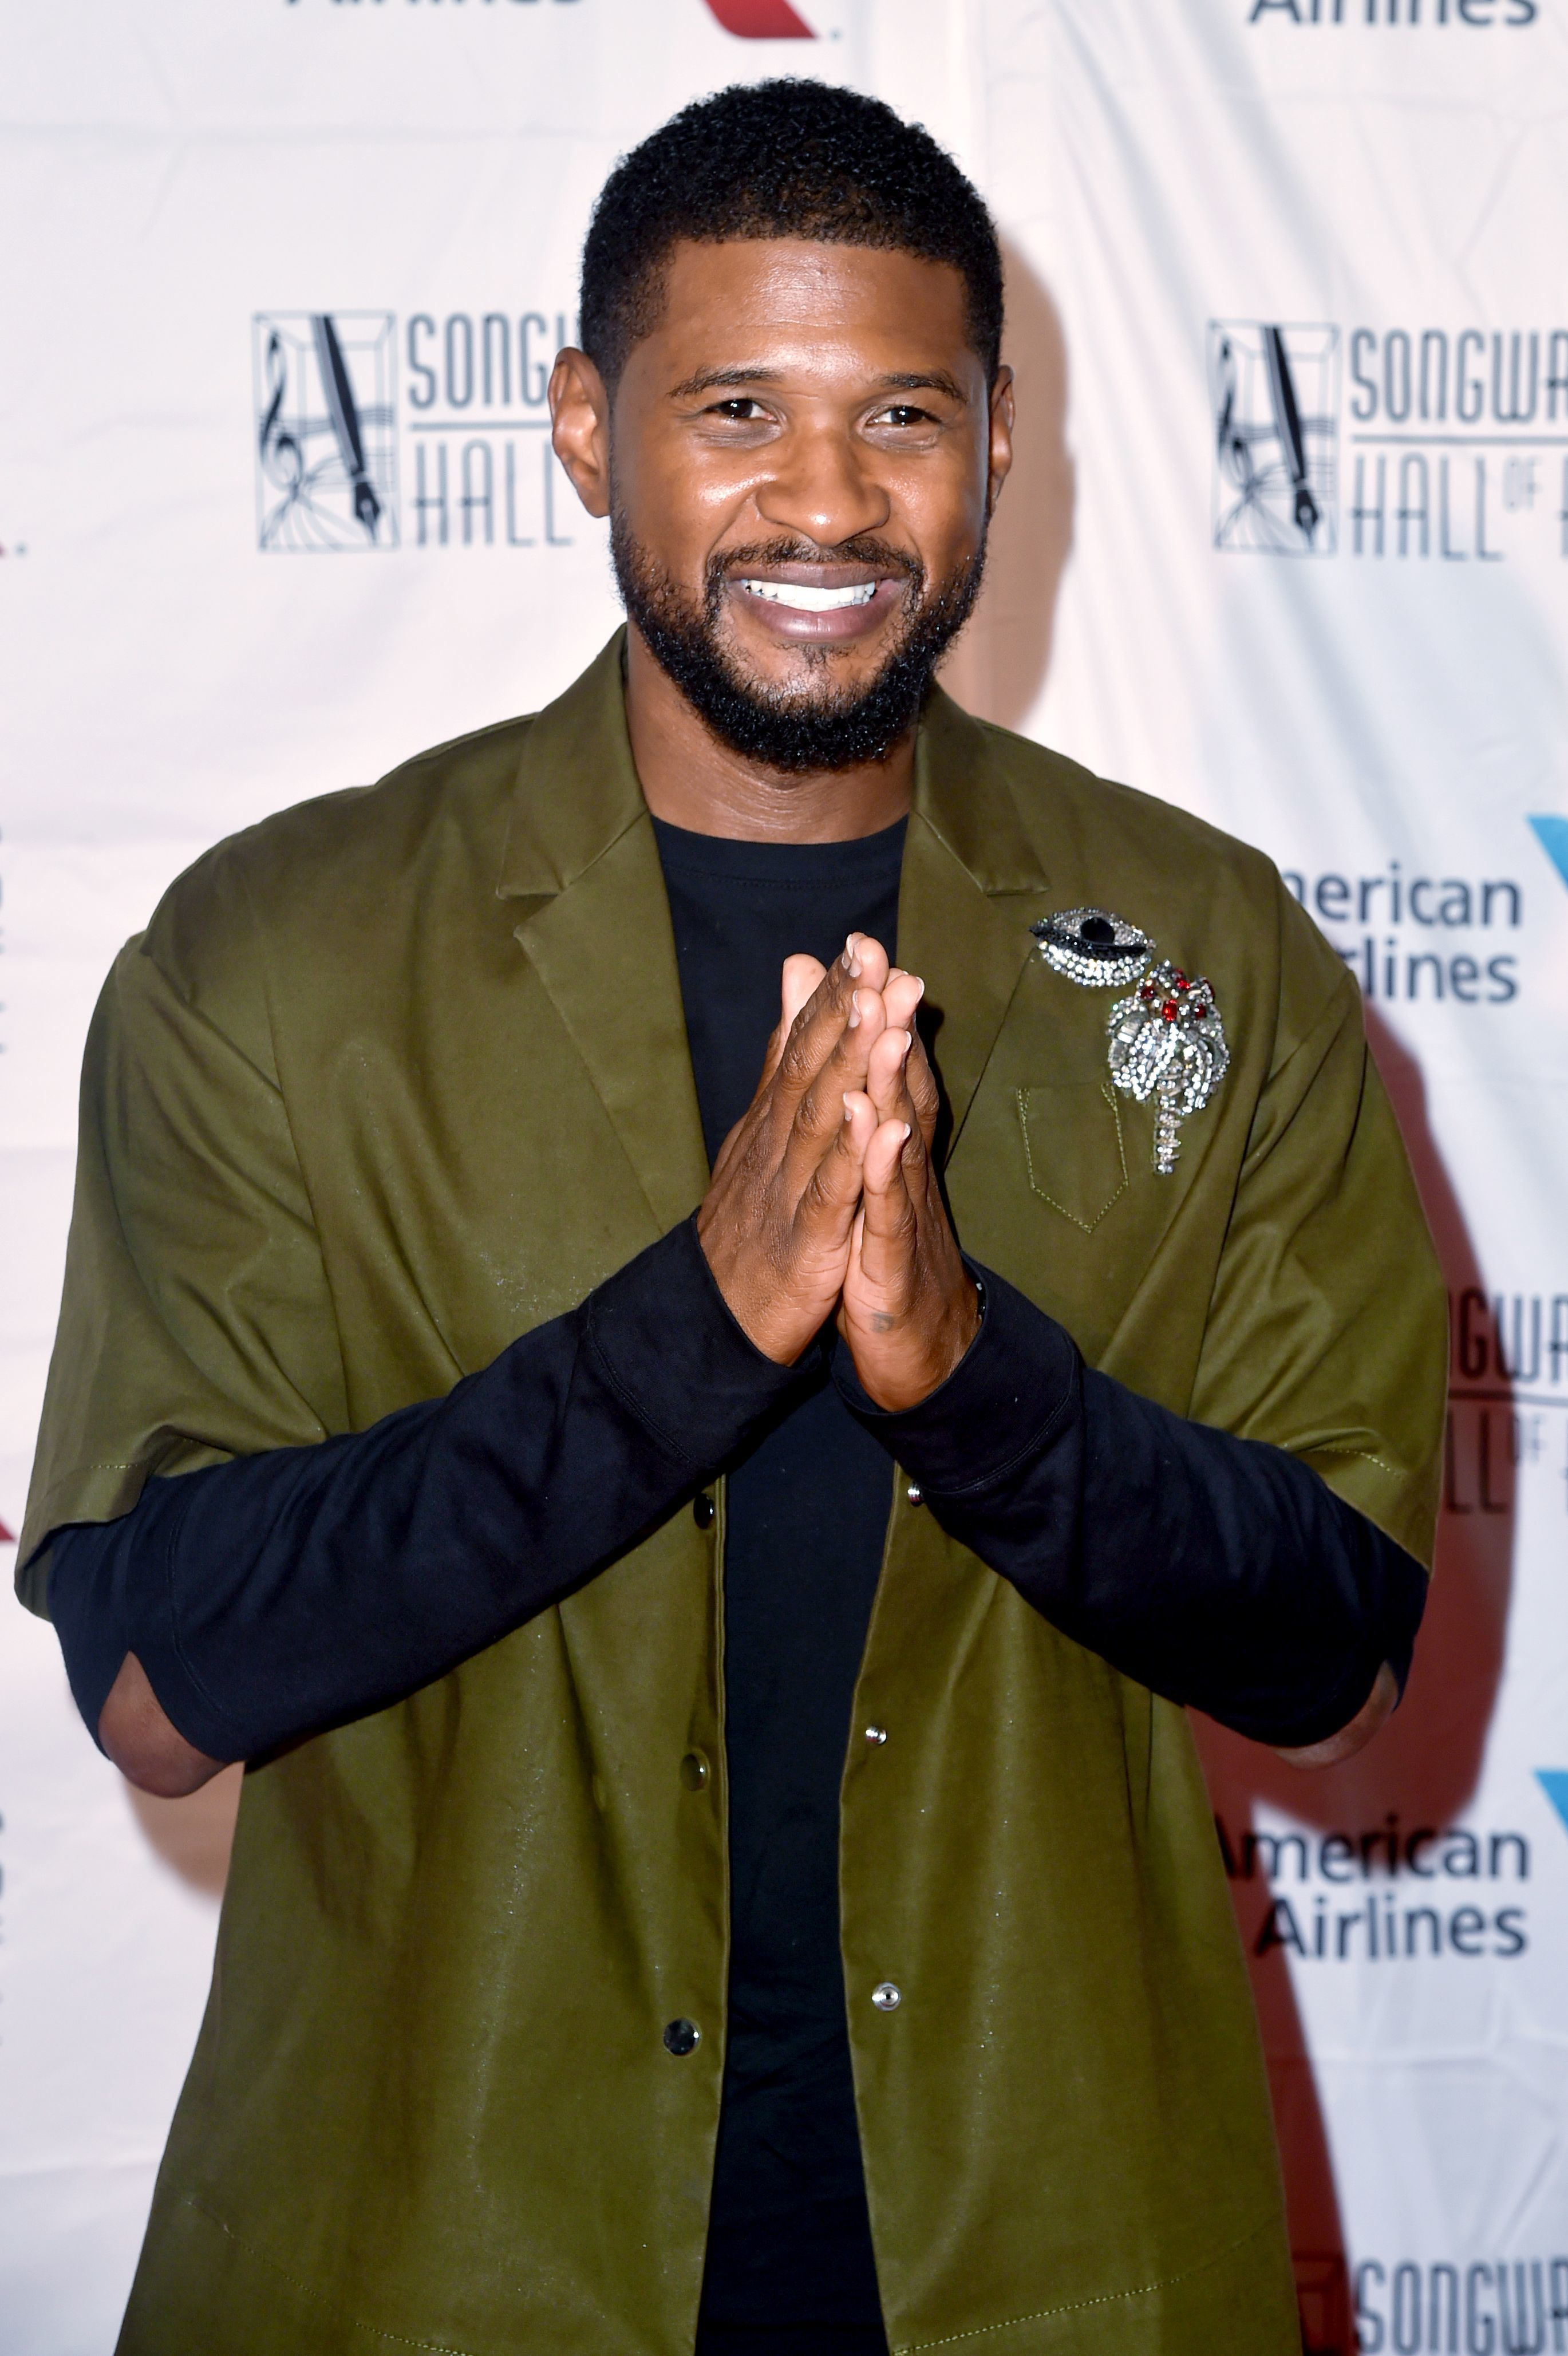 Usher attends the 49th Annual Songwriters Hall of Fame Gala in New York City on June 14, 2018.